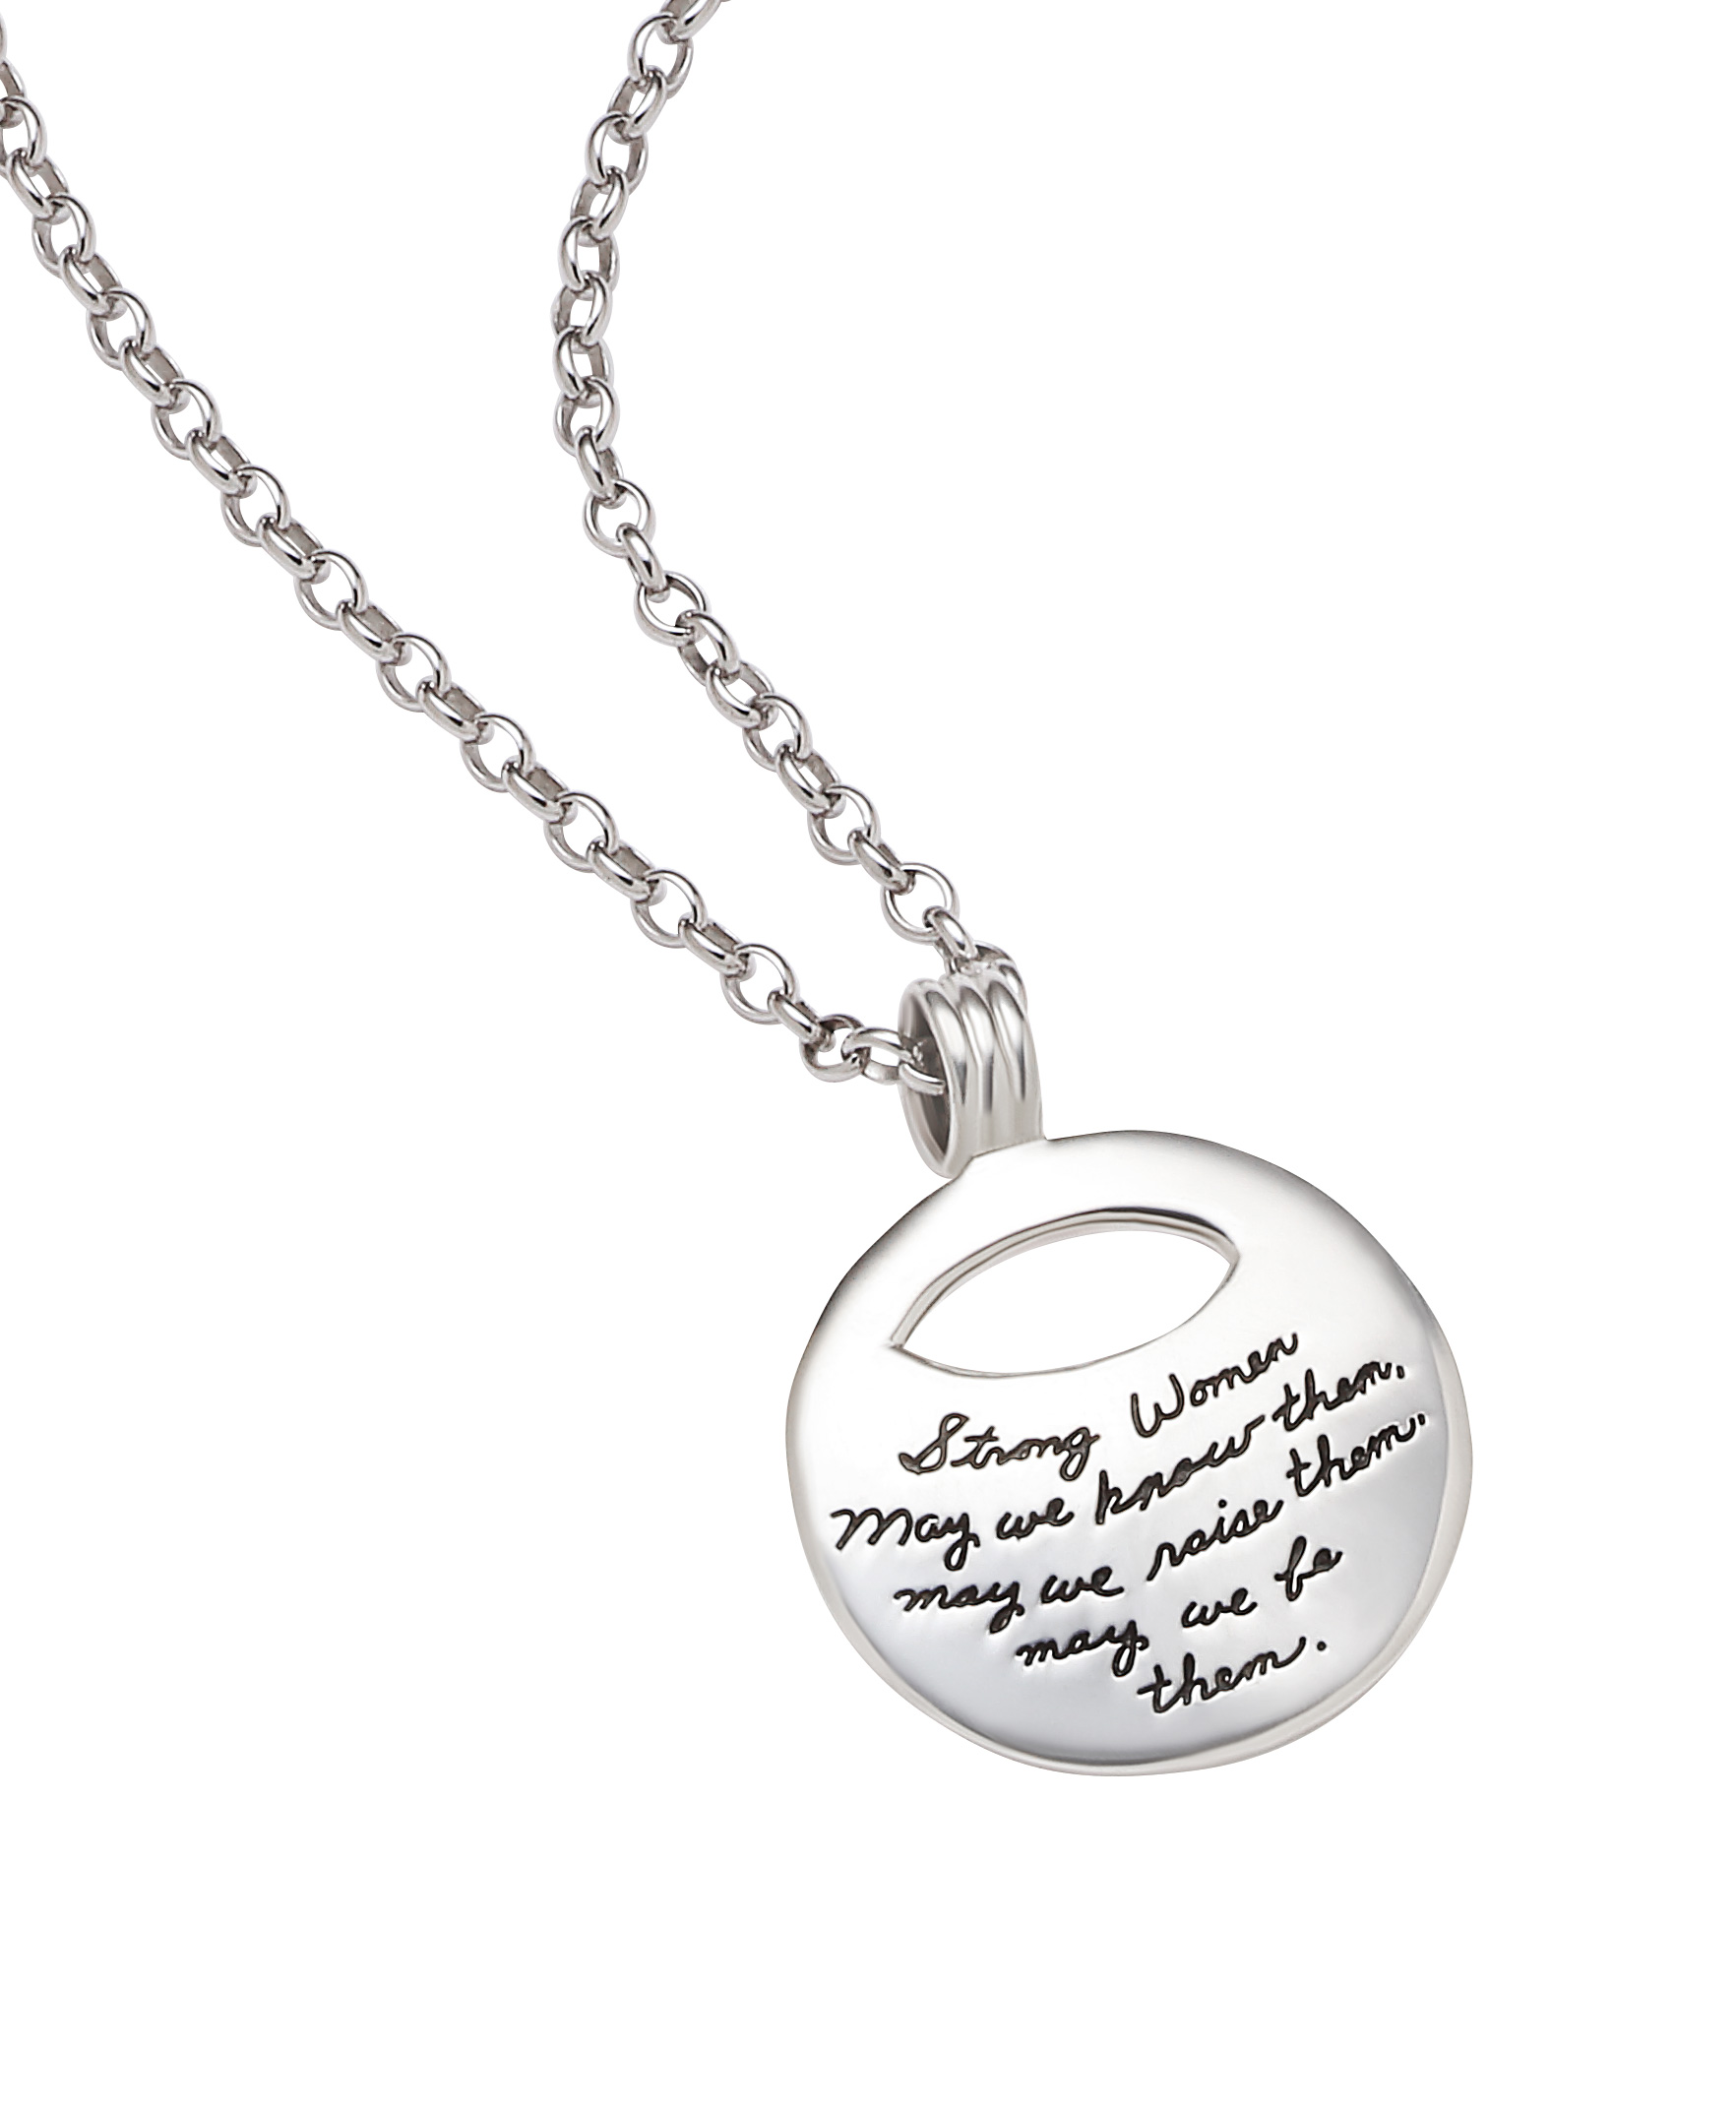 Sterling Silver Inspirational pendant circle with eye shaped cutout near top center engraved with quotation: Strong women. May we know them, may we raise them, may we be them.